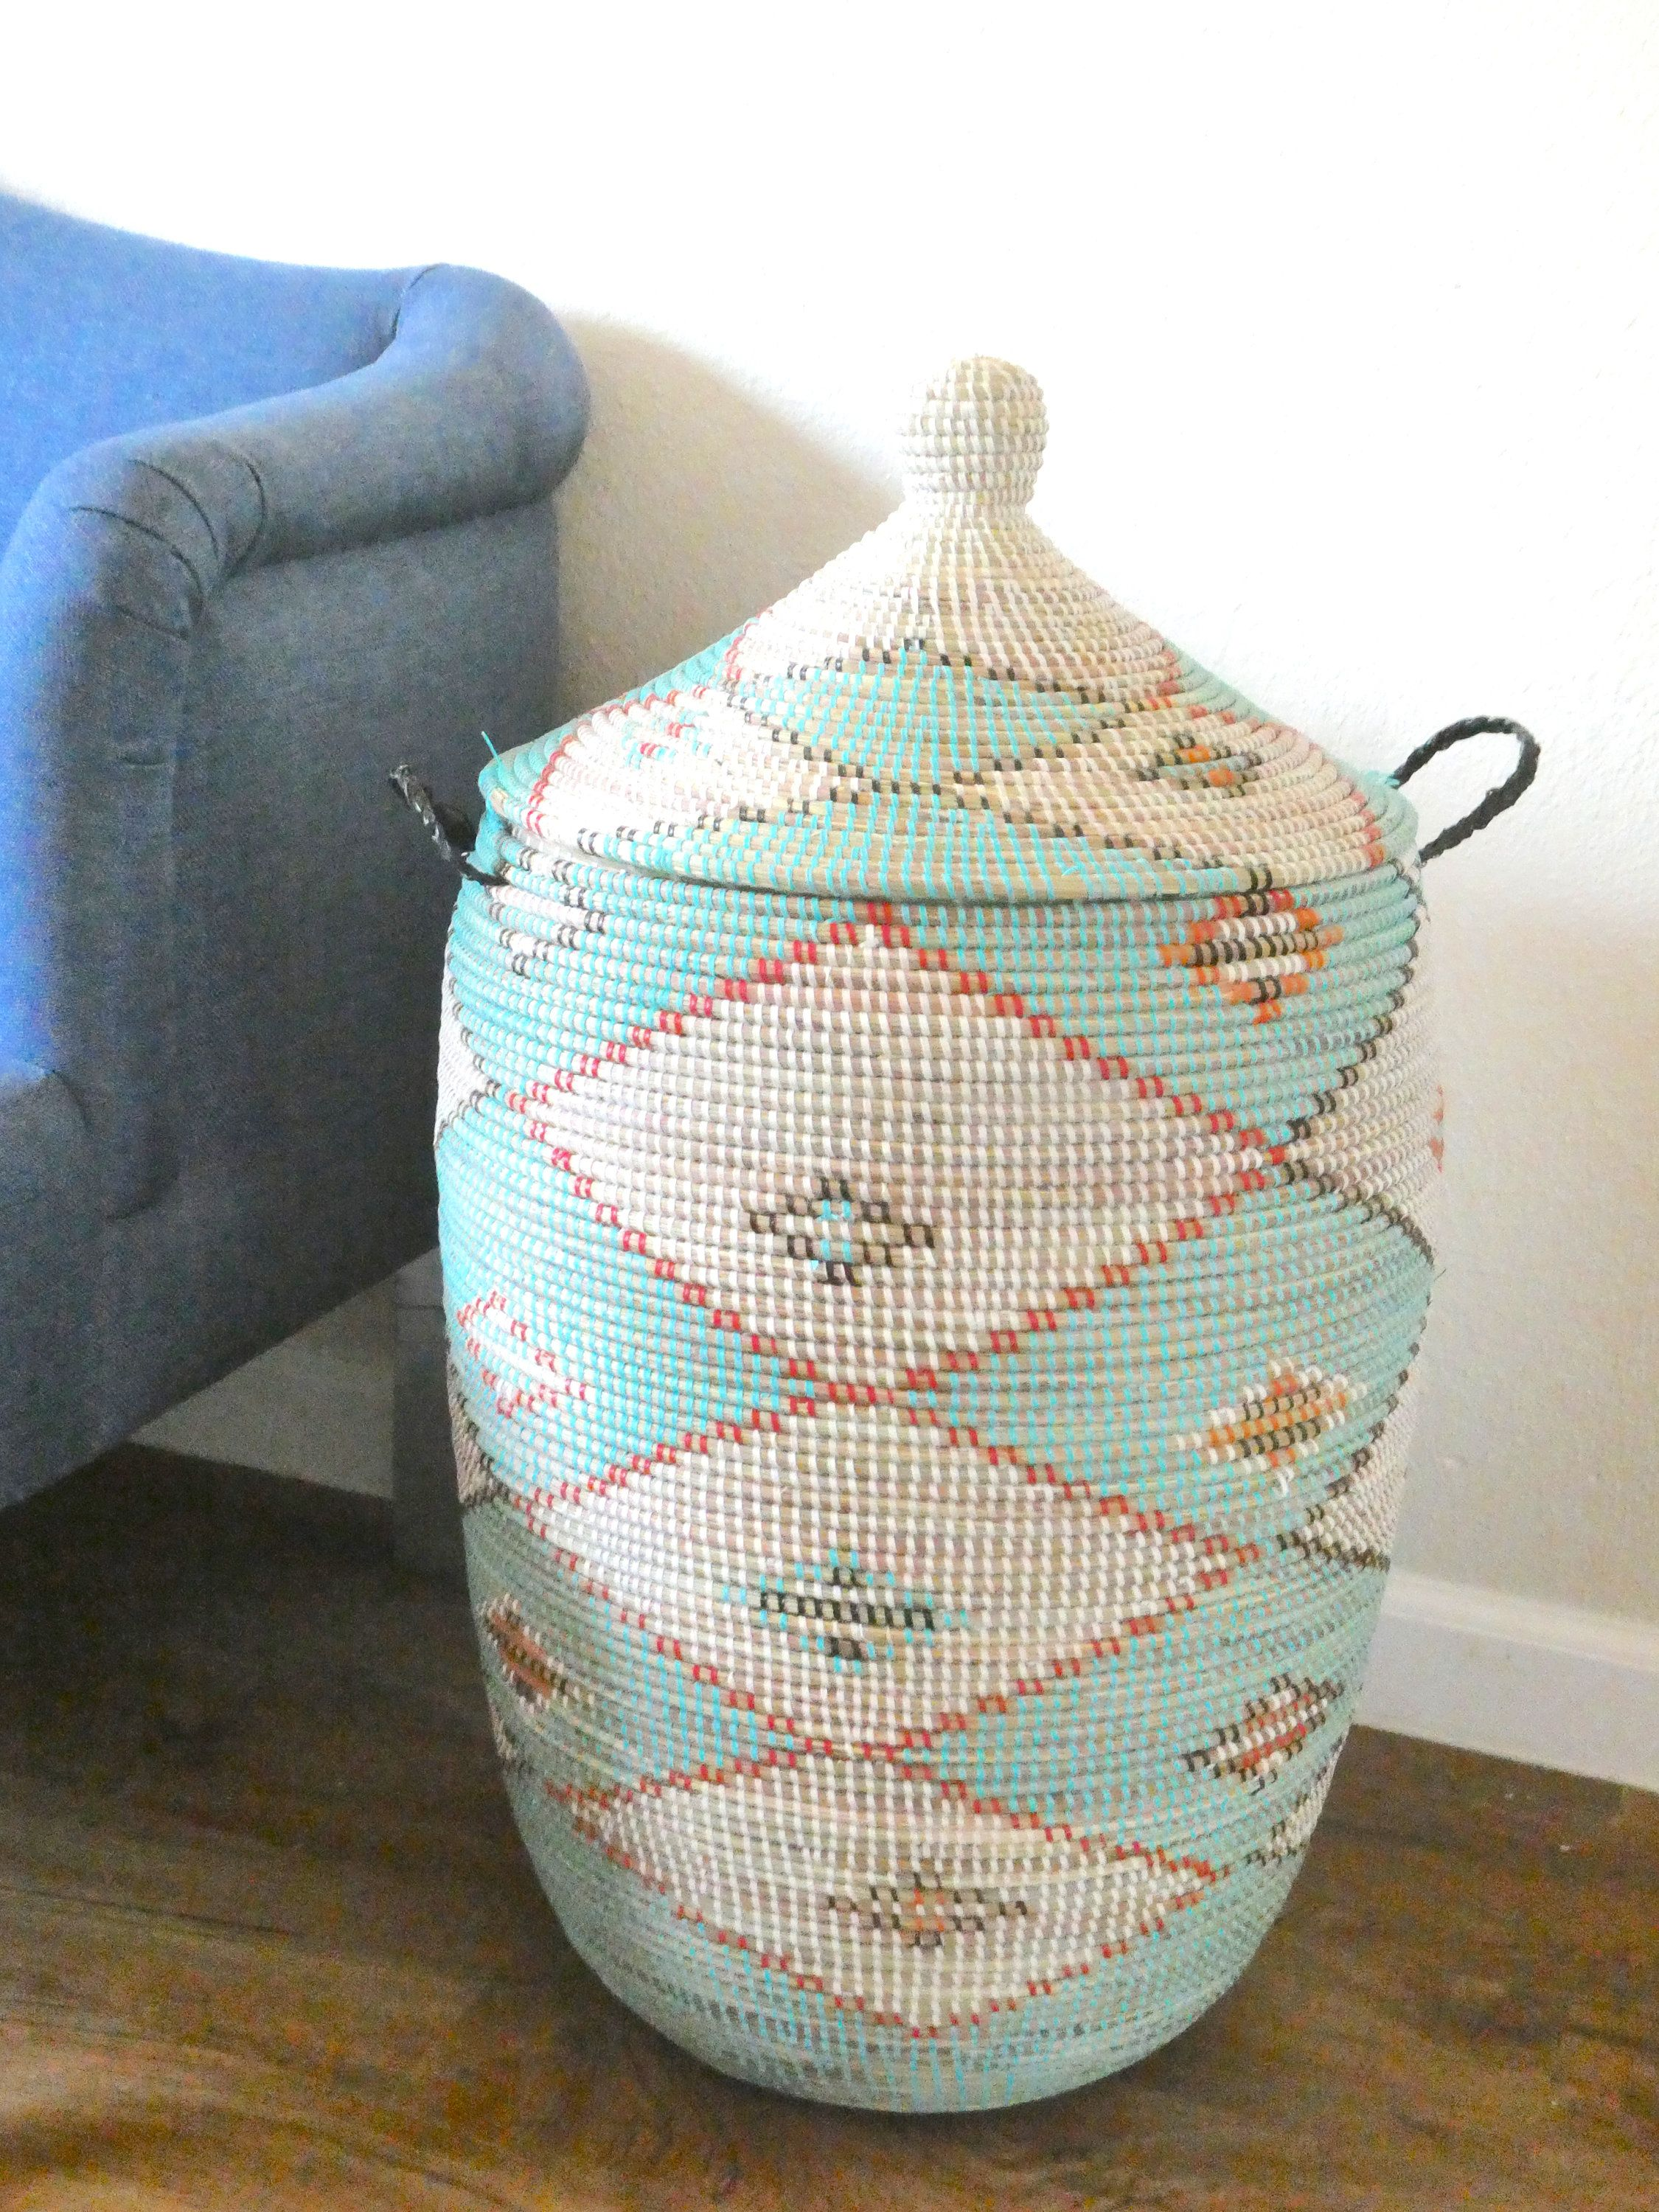 Turquoise And White Eclectic African Laundry Basket Cesto